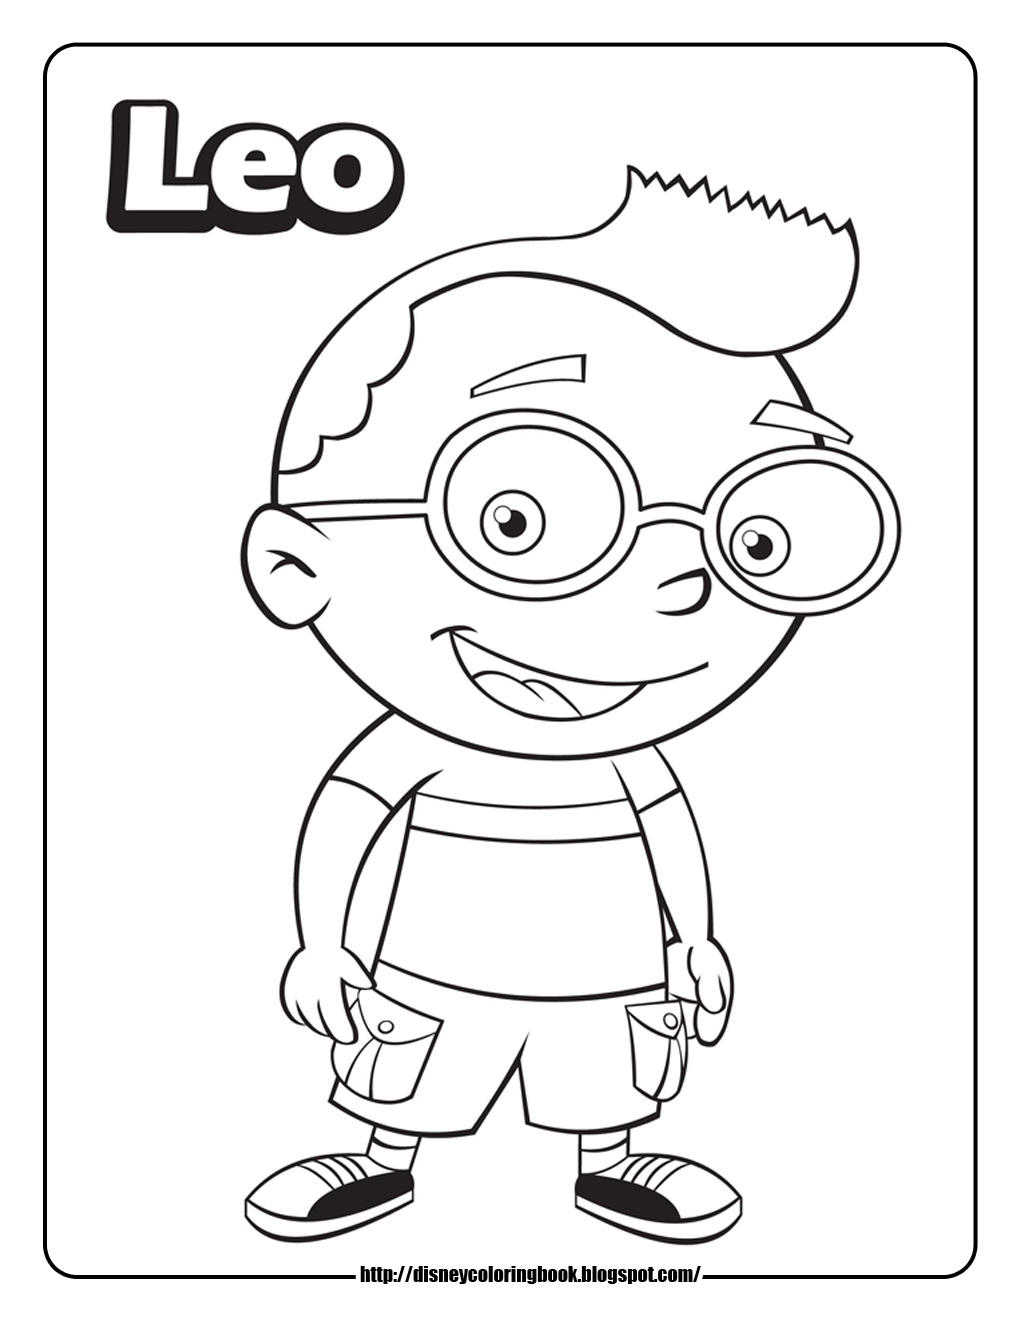 Disney Coloring Pages Sheets Kids Little